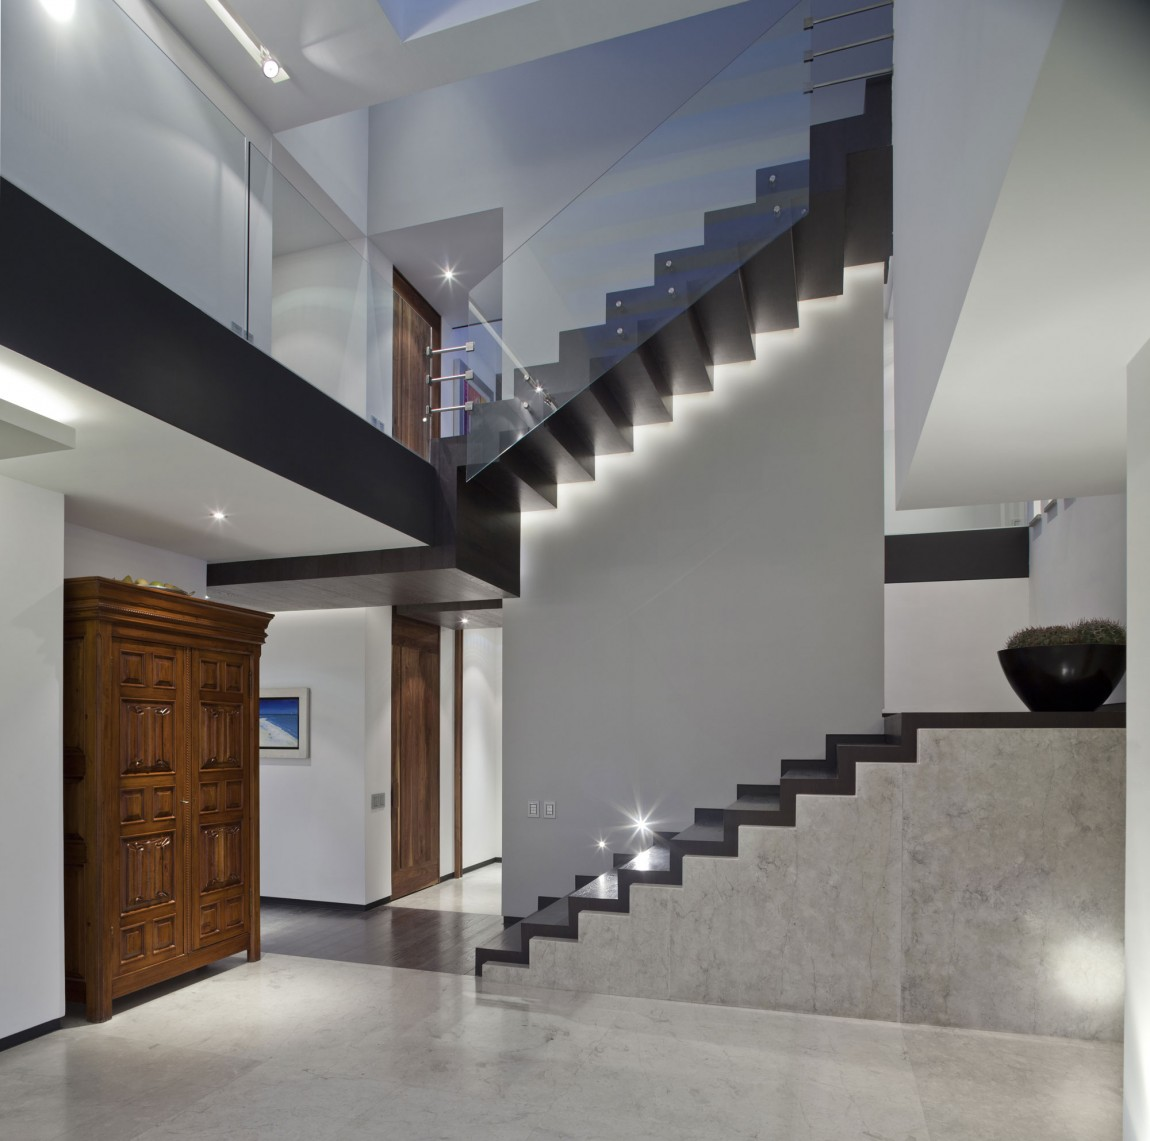 Stairs-and-transparence